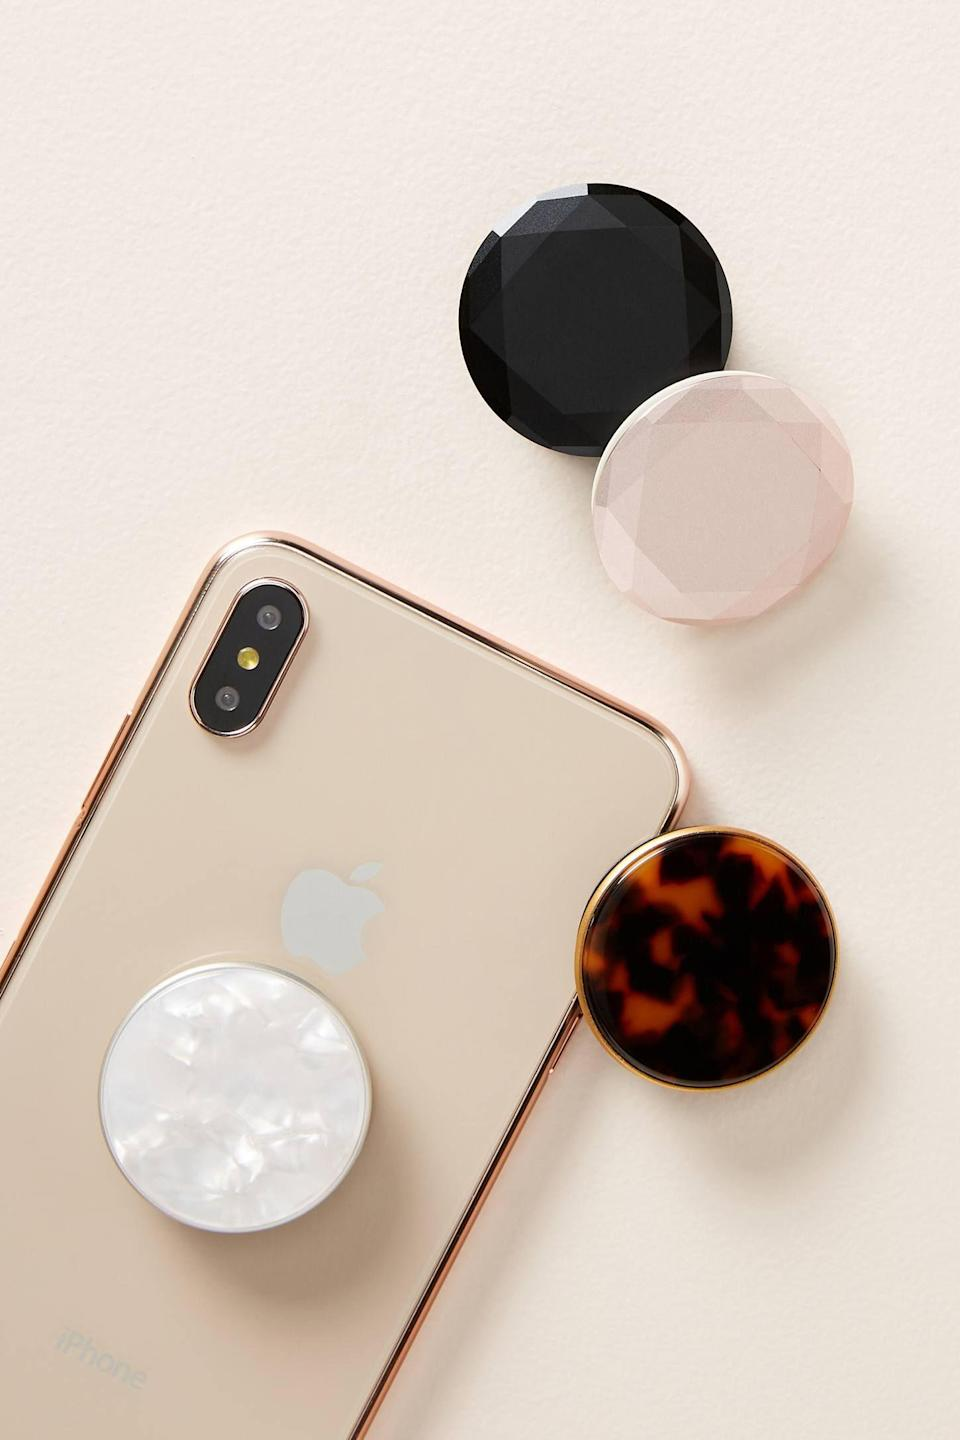 """<p><strong>PopSockets Anthropologie</strong></p><p>anthropologie.com</p><p><strong>$20.00</strong></p><p><a href=""""https://go.redirectingat.com?id=74968X1596630&url=https%3A%2F%2Fwww.anthropologie.com%2Fshop%2Fpopsockets-phone-stand&sref=https%3A%2F%2Fwww.prevention.com%2Flife%2Fg30025627%2Fcheap-stocking-stuffers%2F"""" rel=""""nofollow noopener"""" target=""""_blank"""" data-ylk=""""slk:Shop Now"""" class=""""link rapid-noclick-resp"""">Shop Now</a></p><p>If you've been thinking about jumping on the PopSocket bandwagon, meet the classiest ones we've seen yet! </p>"""